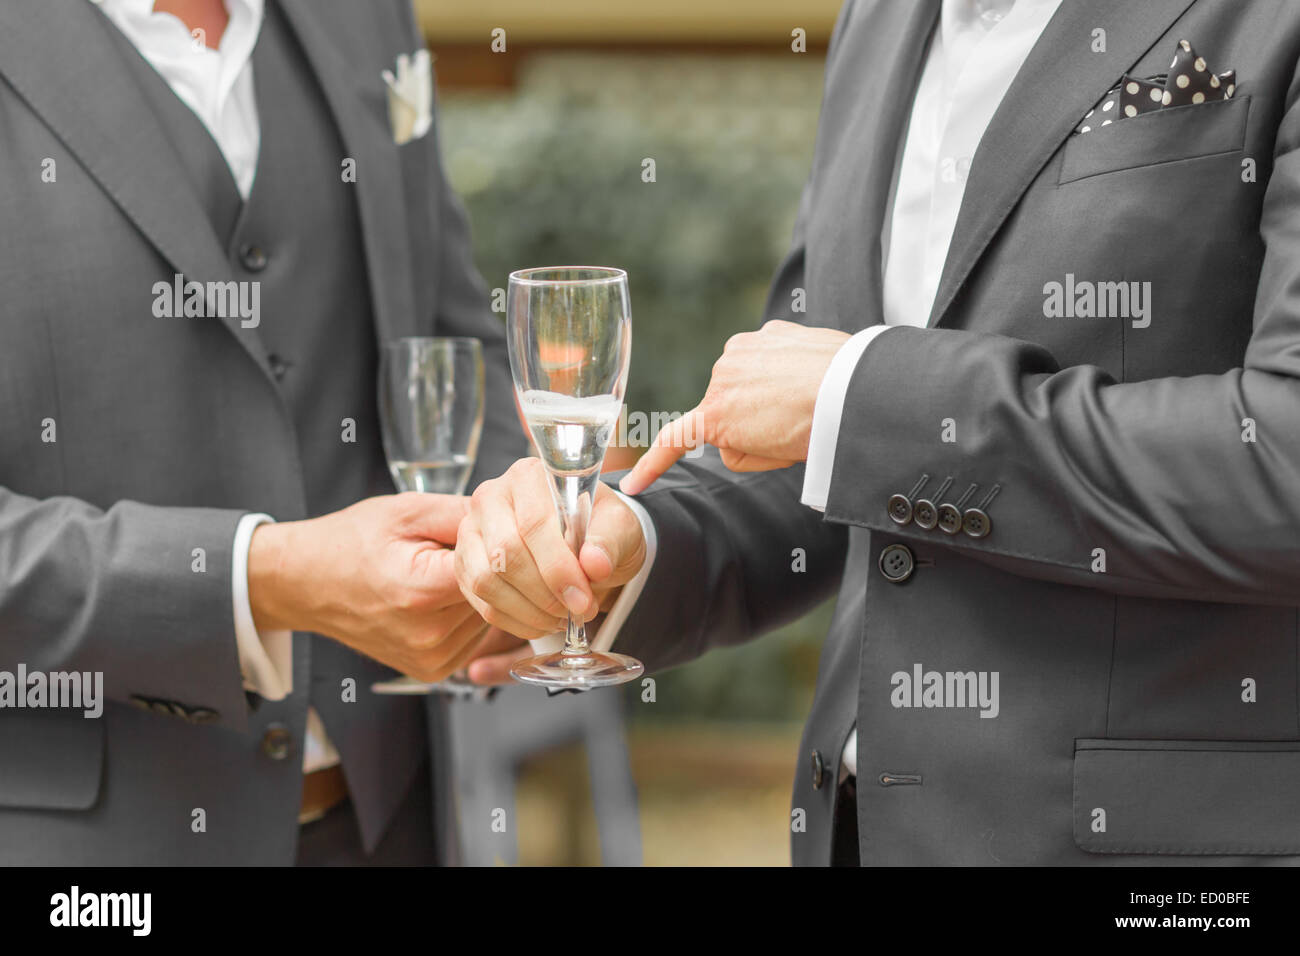 Mid section of full suit men holding wine glasses - Stock Image